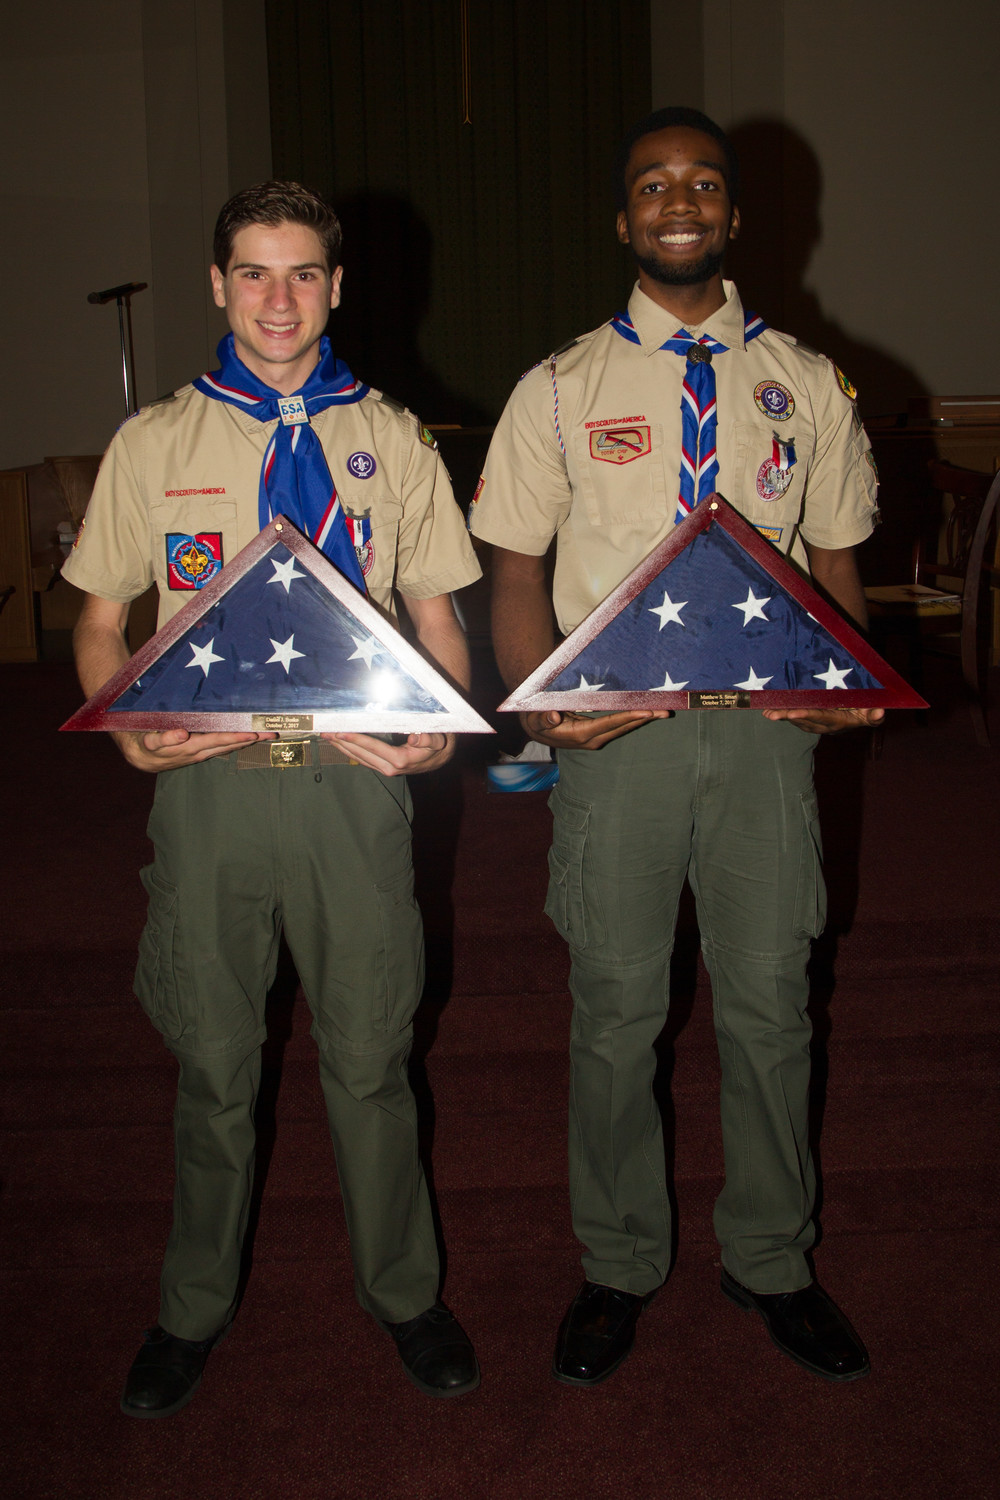 Valley Stream's newest Eagle Scouts Daniel Bosko, left, and Matthew Smart. The two accepted their medals on Oct. 7.